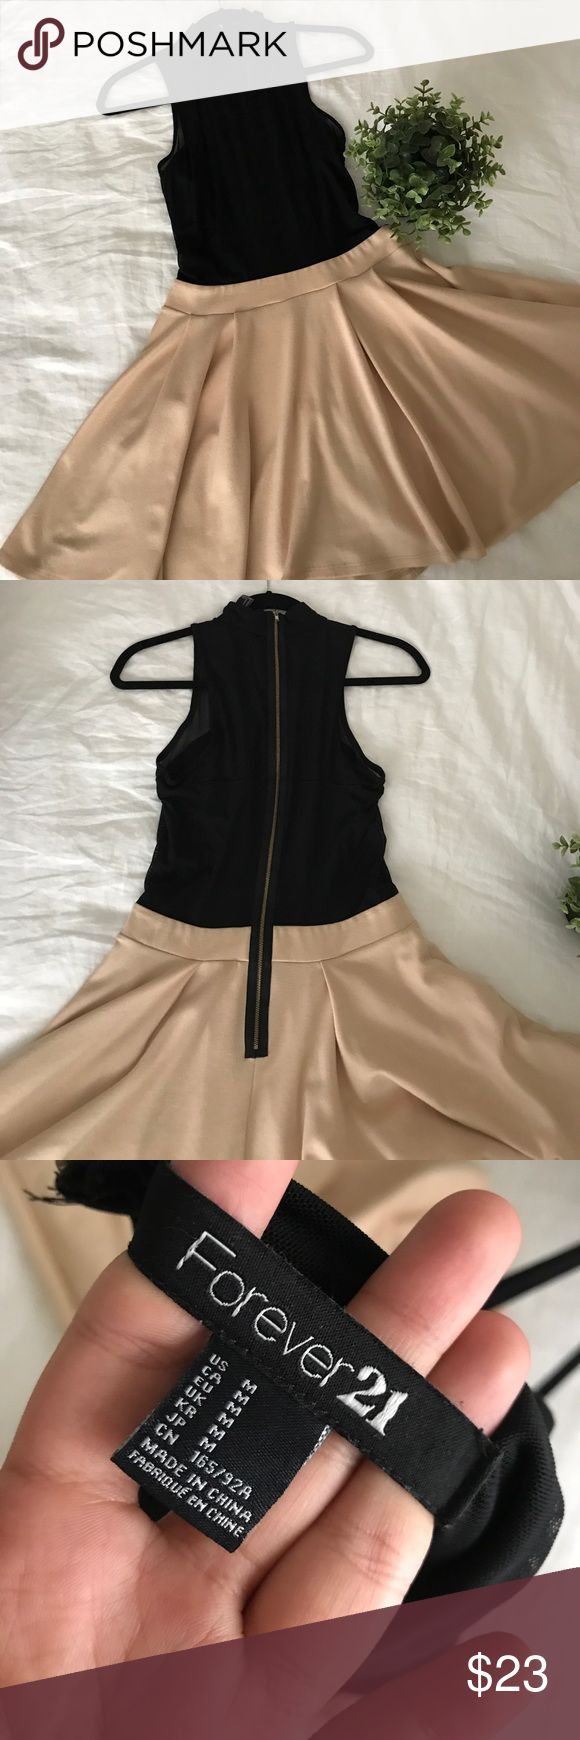 Mock Neck Mesh Forever 21 A Line Night Dress Hardly worn gorgeous dress. Perfect for homecoming. Exposed zipper and nude skirt with mesh neck. No stains or damage. In excellent condition. Price negotiable, make me an offer!✨ Don't forget to check out my closet for a bundle deal!💕  Ships today🛫 Forever 21 Dresses Mini